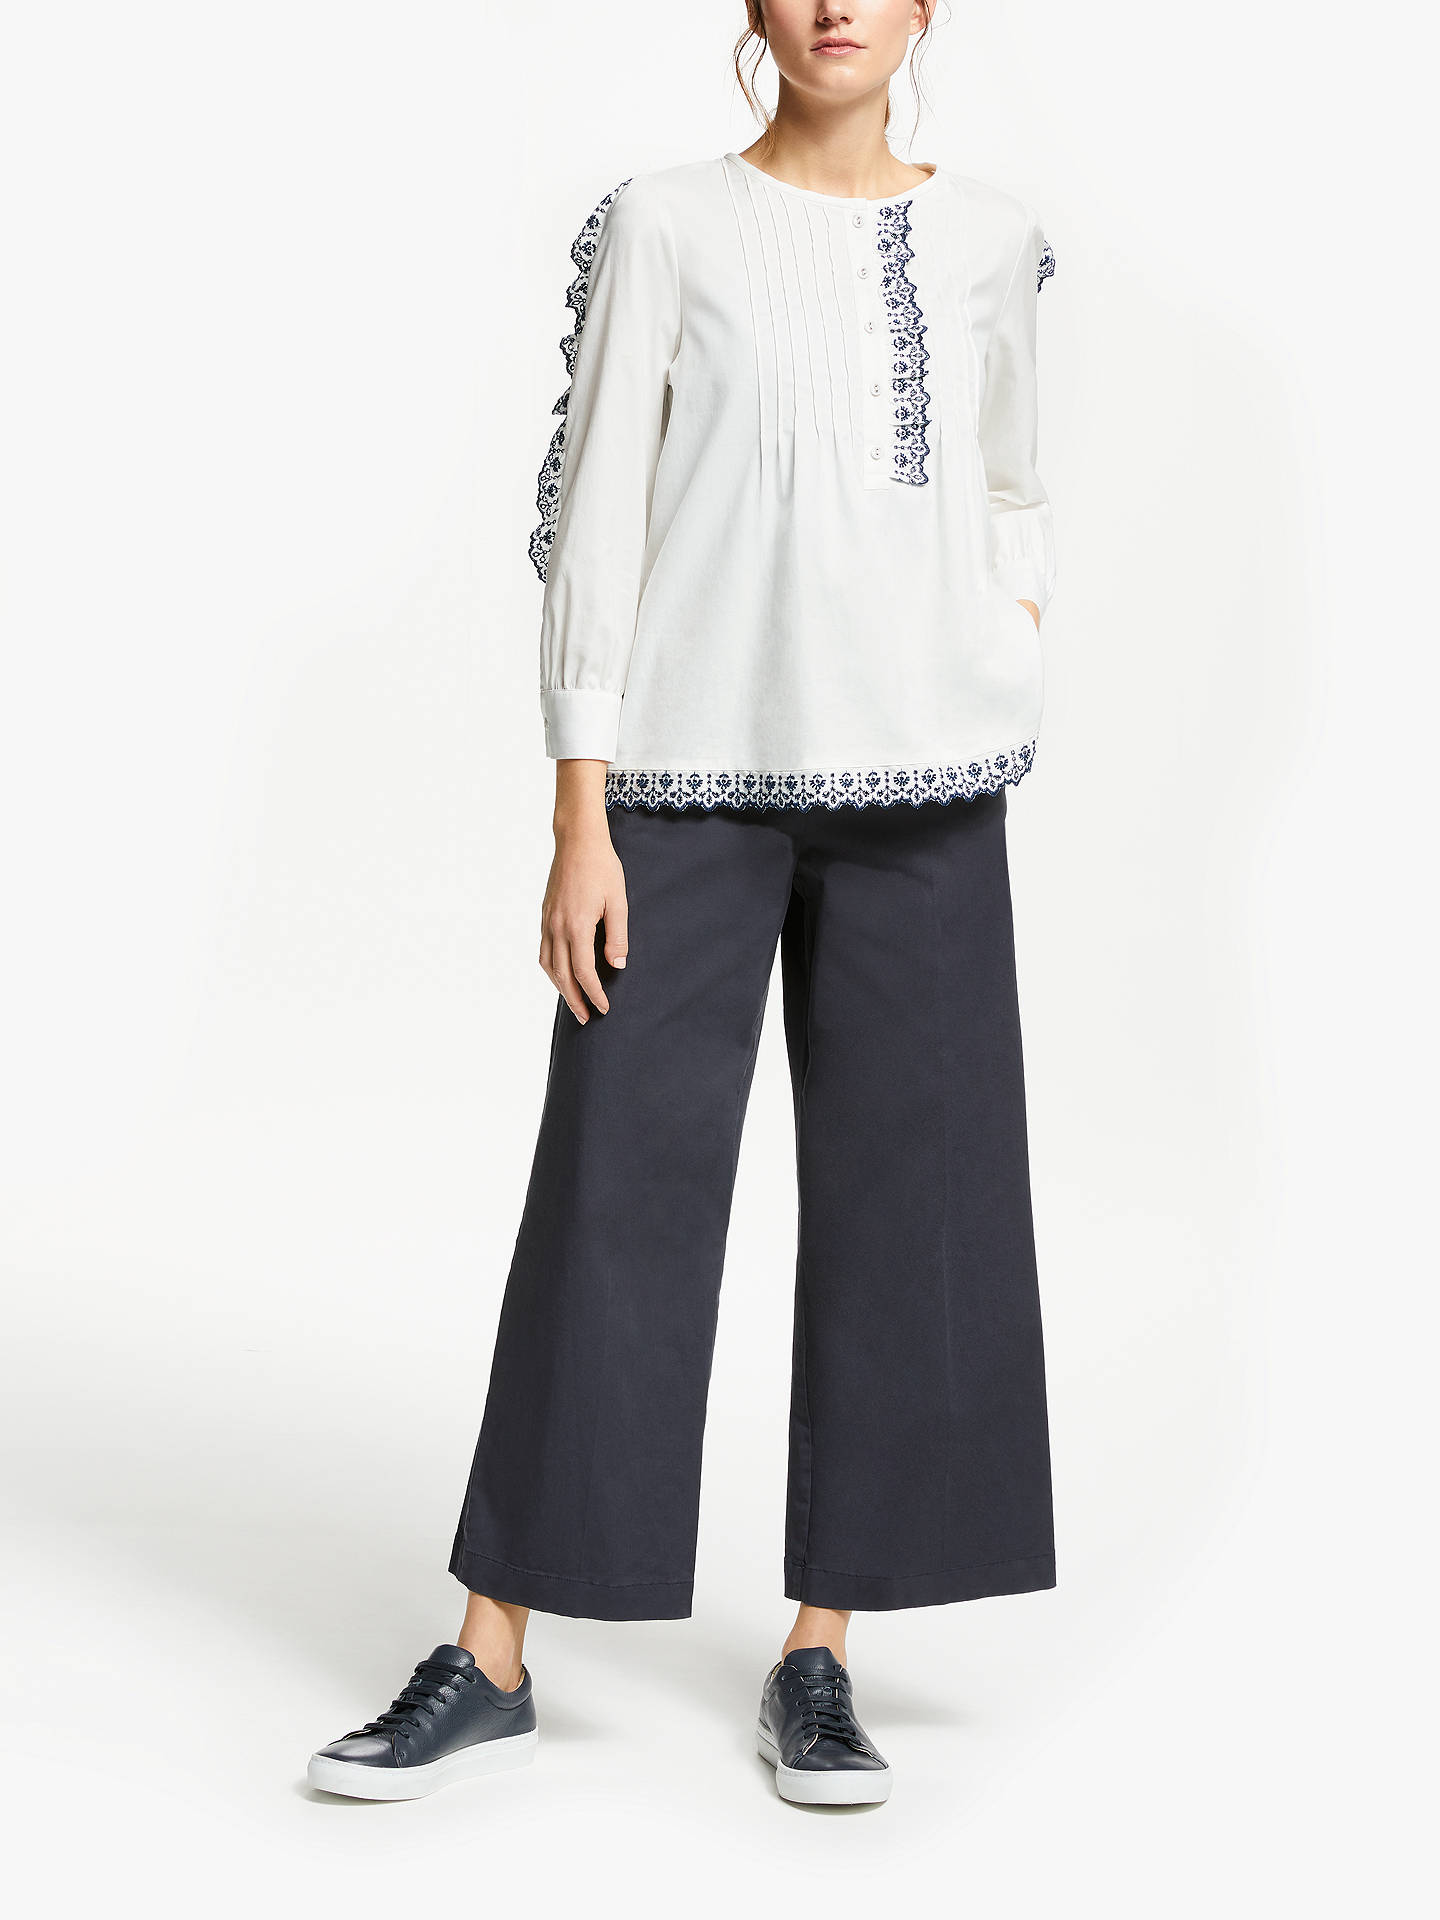 BuyWeekend MaxMara Cotton Embroidered Blouse, Optical White, 8 Online at johnlewis.com